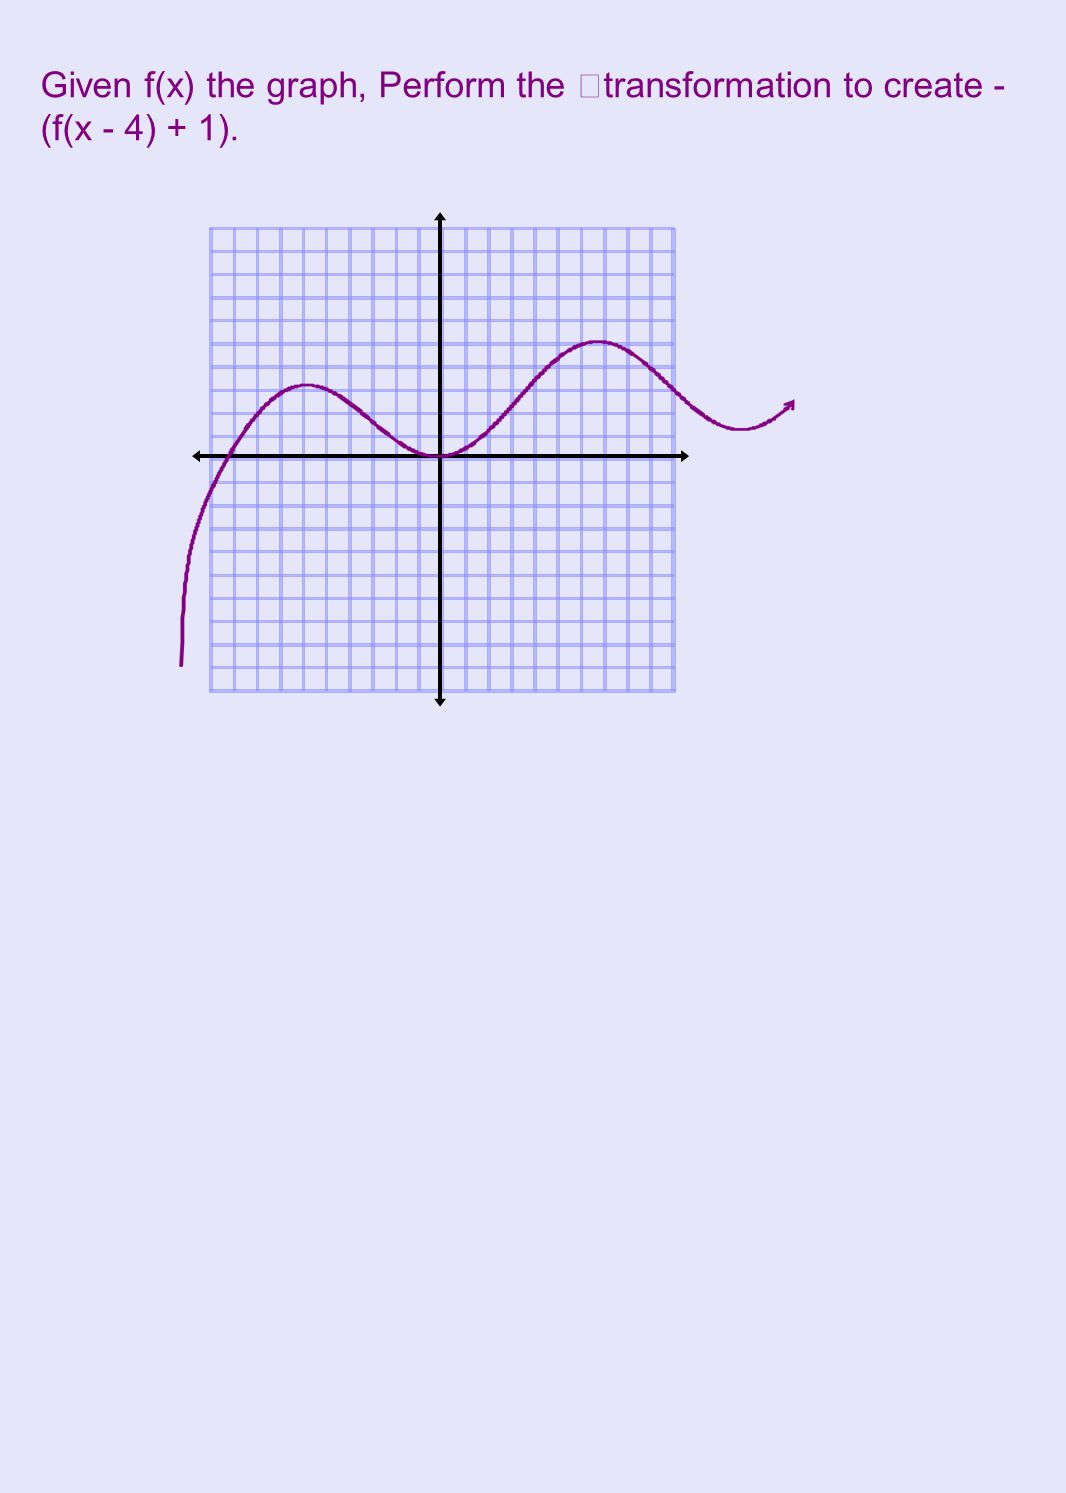 Given f(x) the graph, Perform the transformation to create -(f(x - 4) + 1).